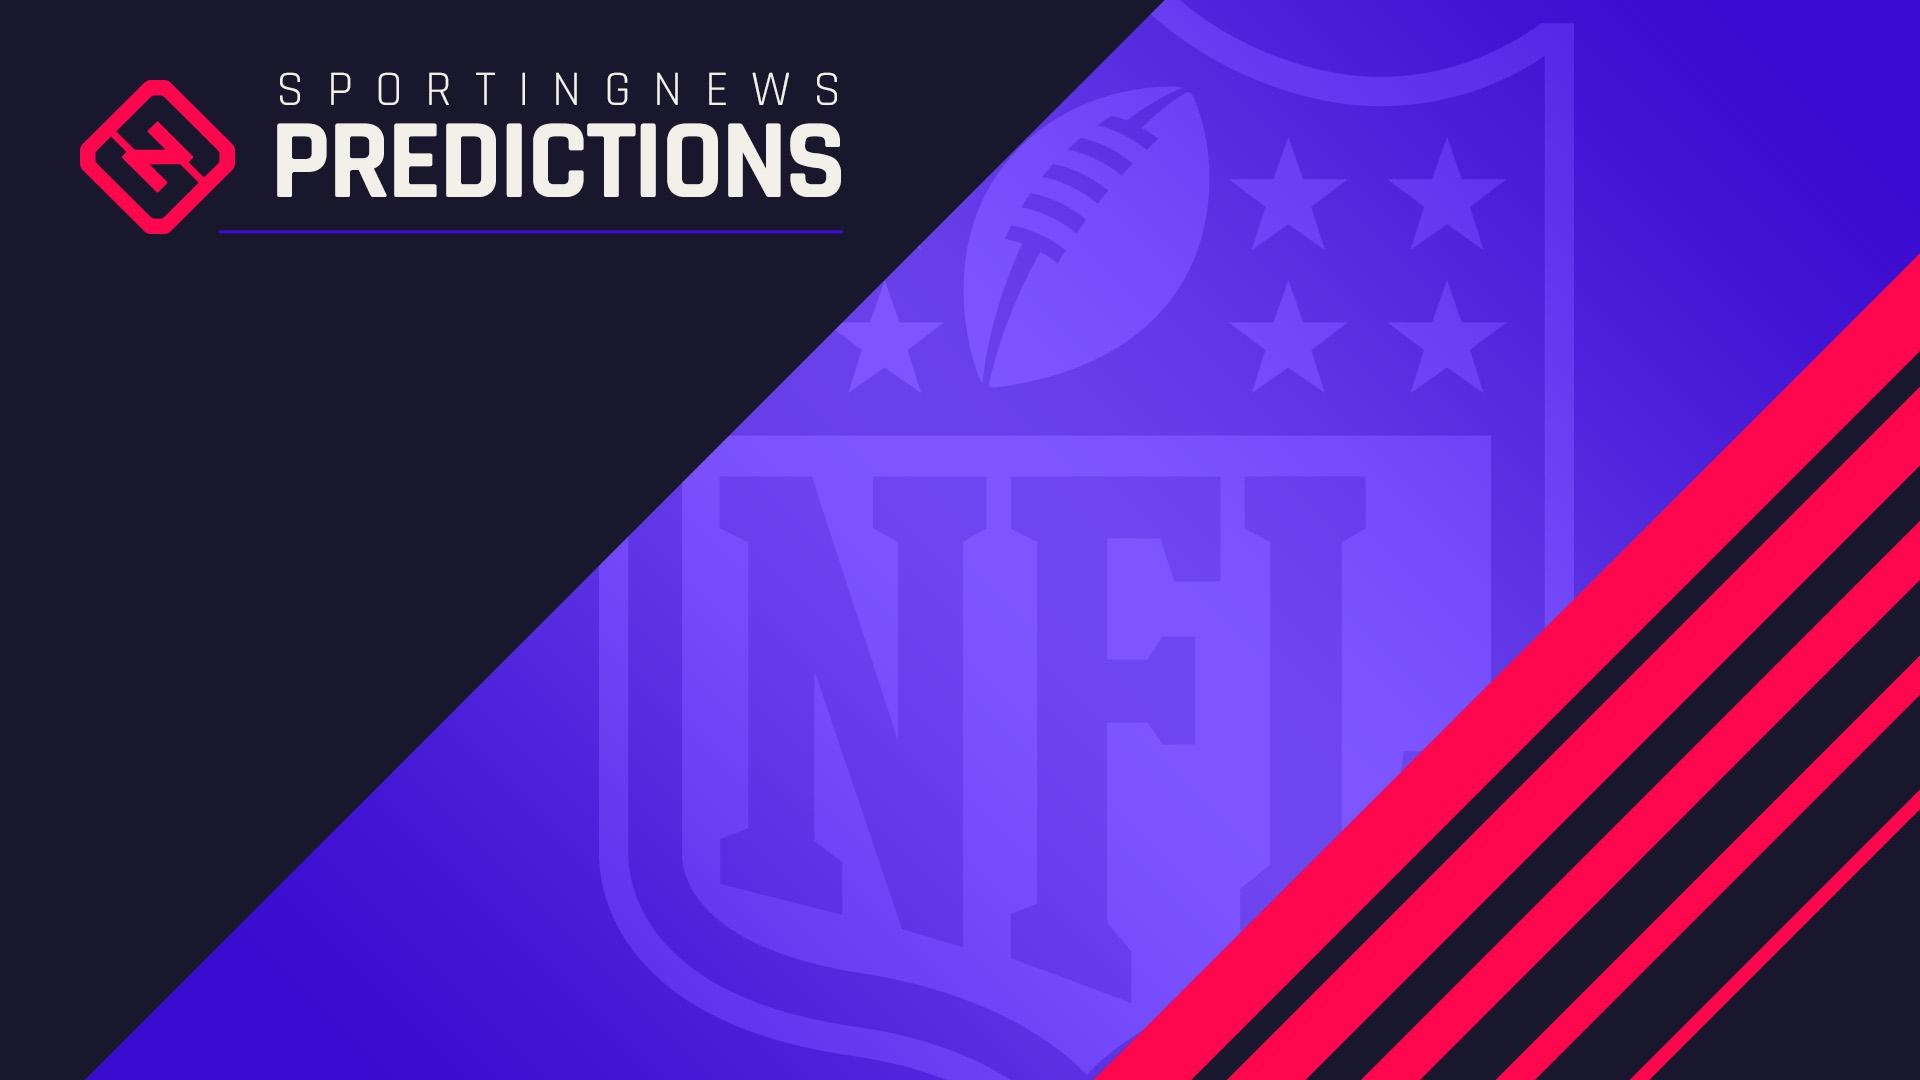 nfl predictions for 2017 final standings playoff projections and super bowl pick sporting news. Black Bedroom Furniture Sets. Home Design Ideas